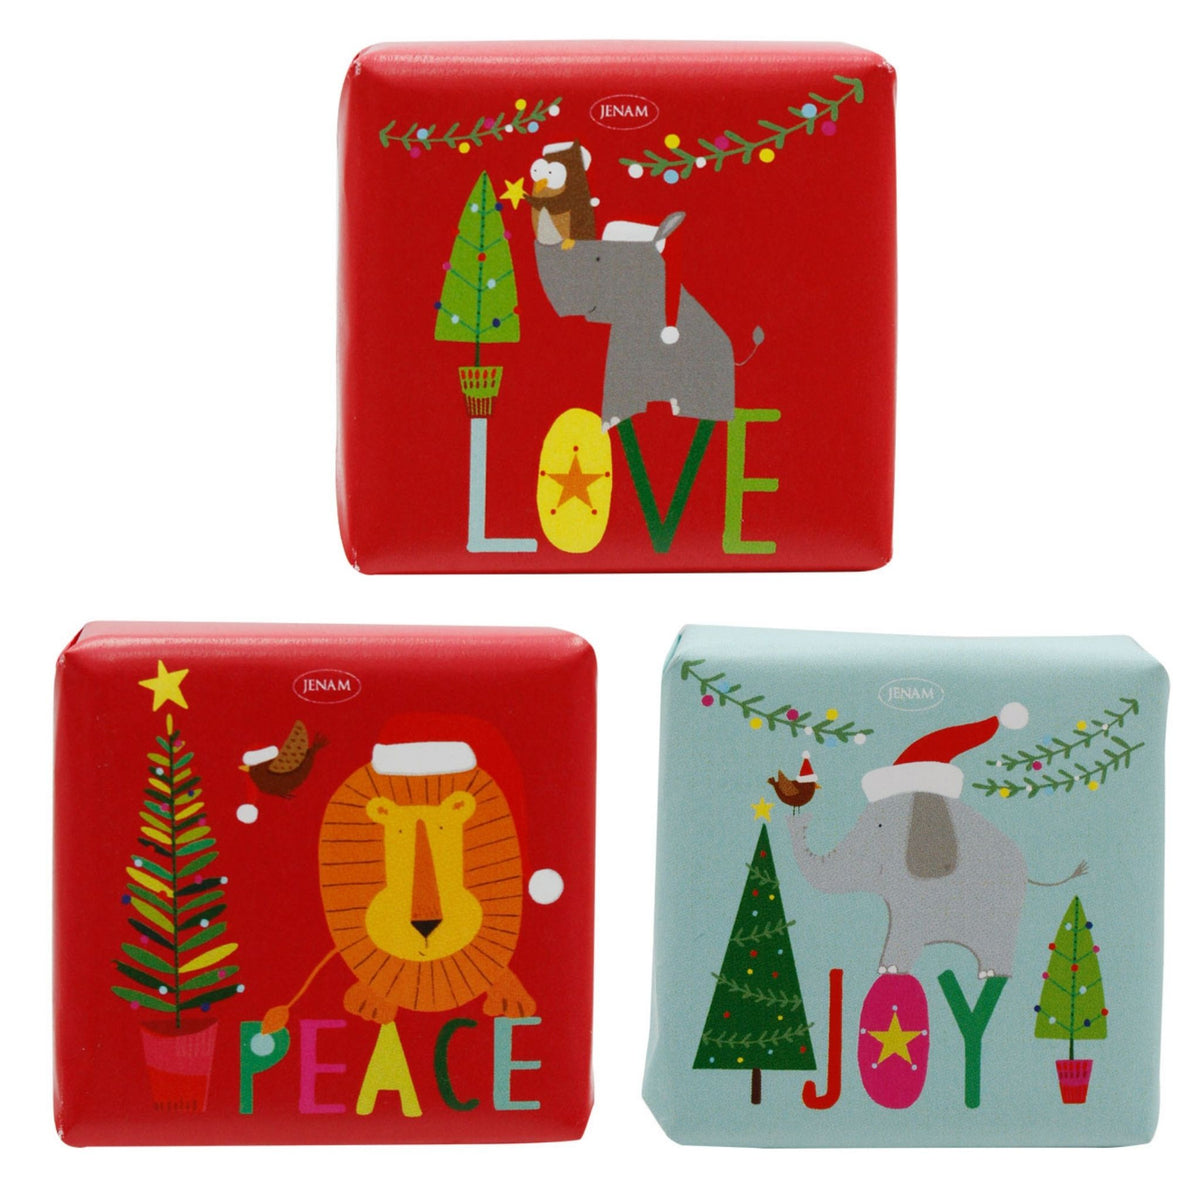 Christmas Cheer Fragranced Soaps